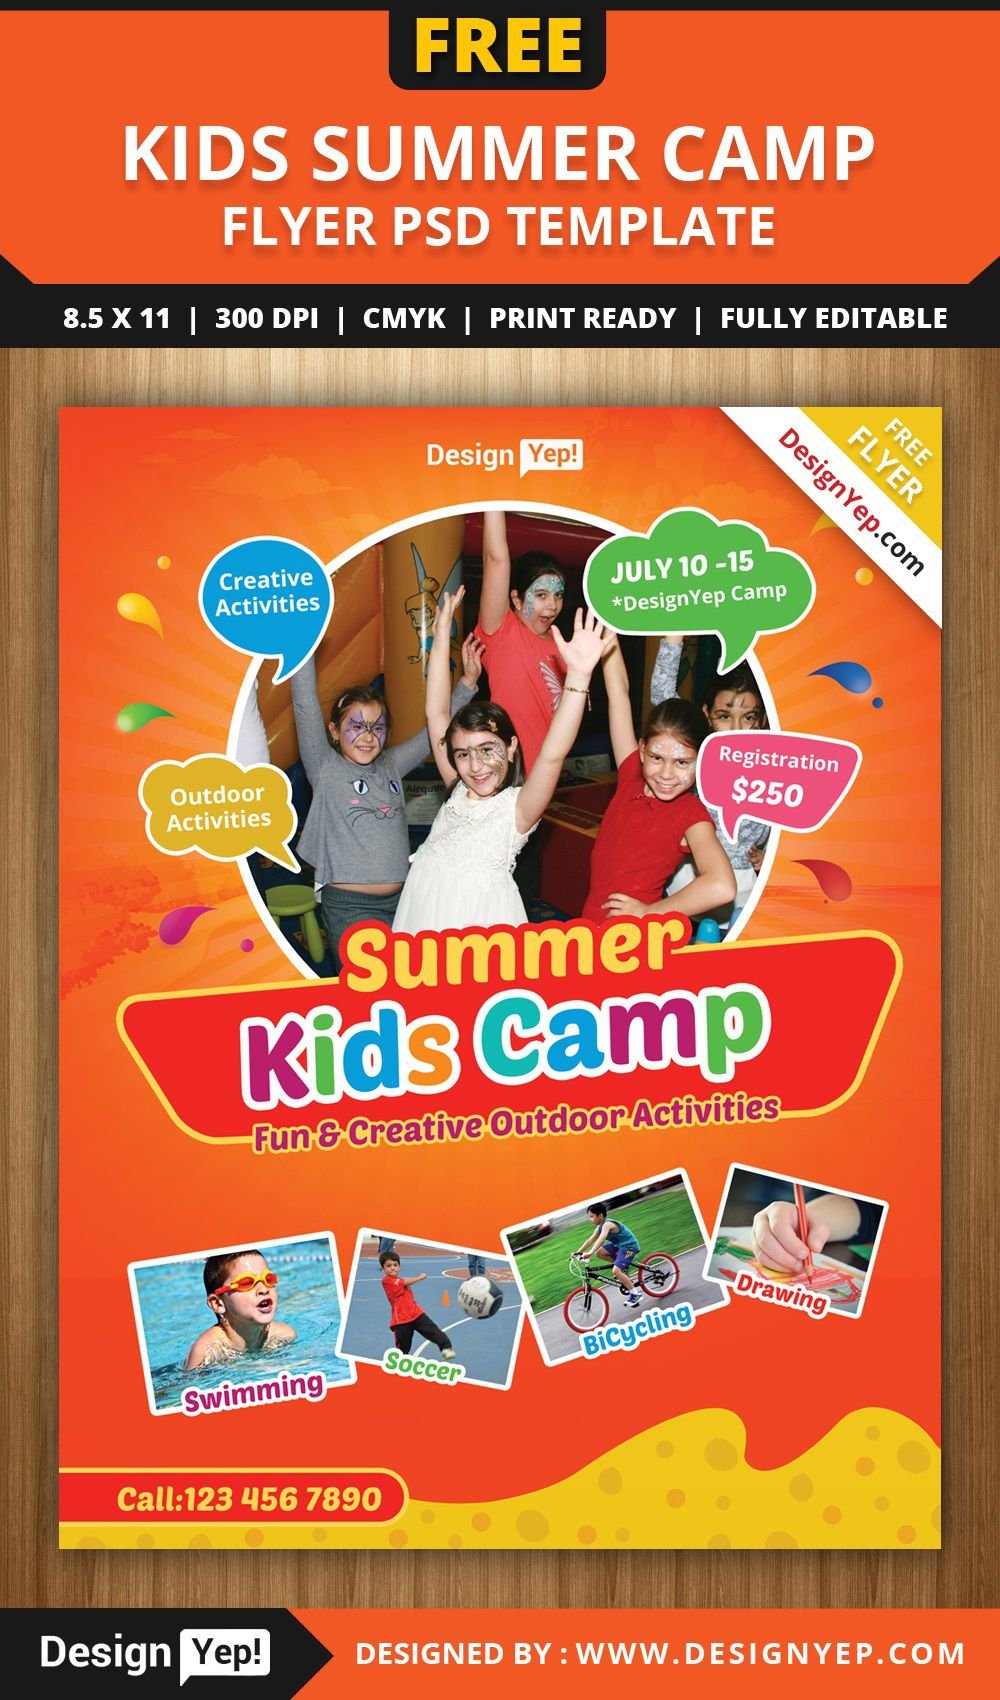 003 Shocking Summer Camp Flyer Template Picture  Day Microsoft Word BackgroundFull